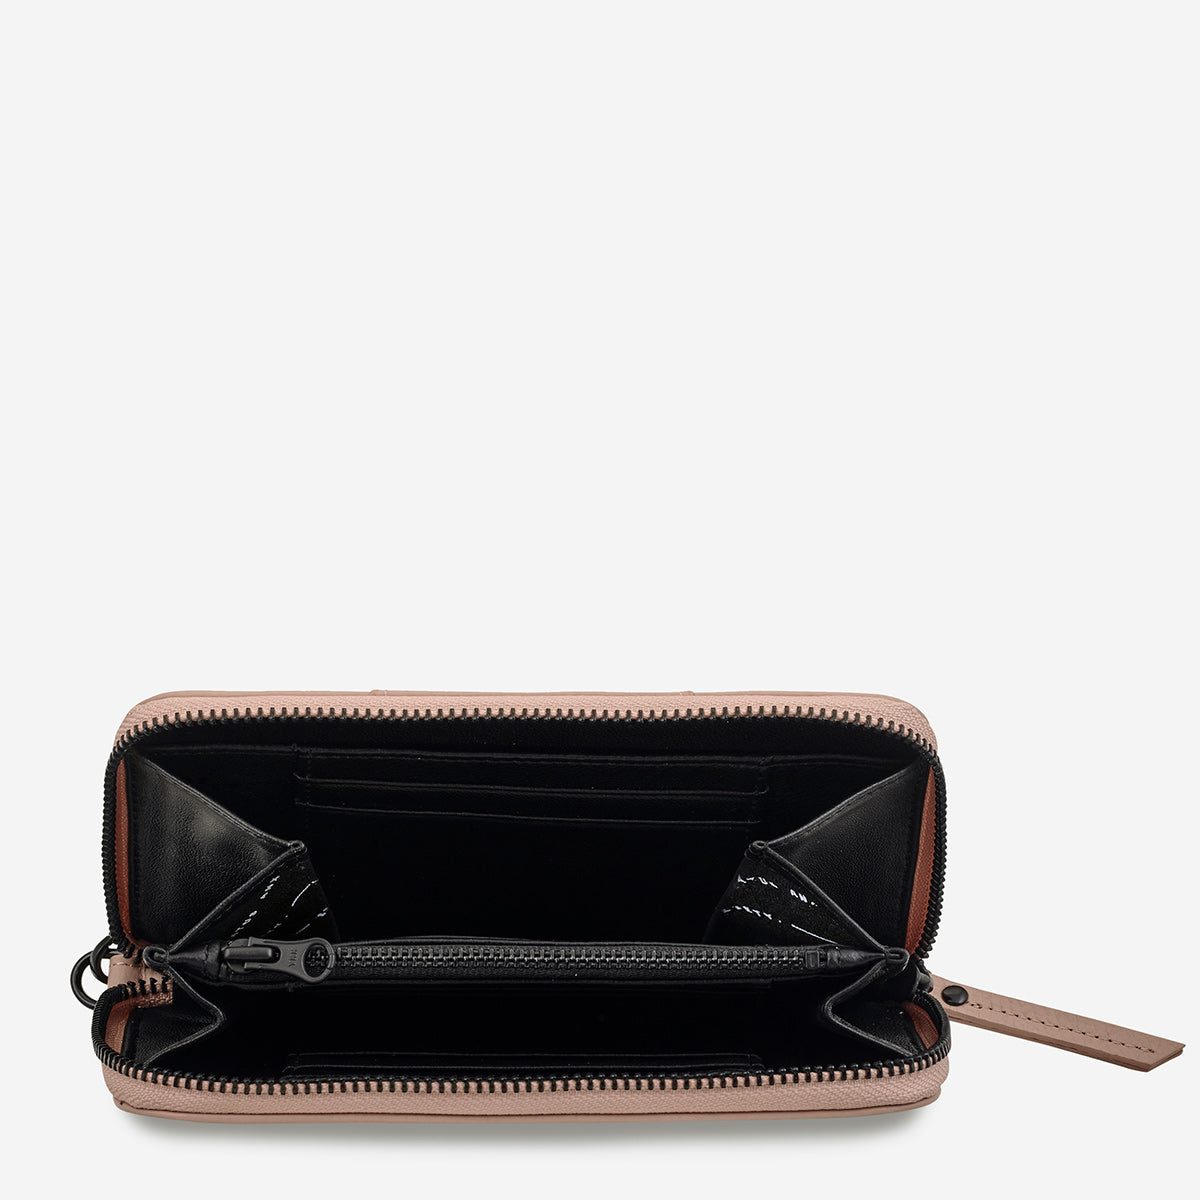 Status Anxiety Moving On Women's Leather Wallet - Dusty Pink